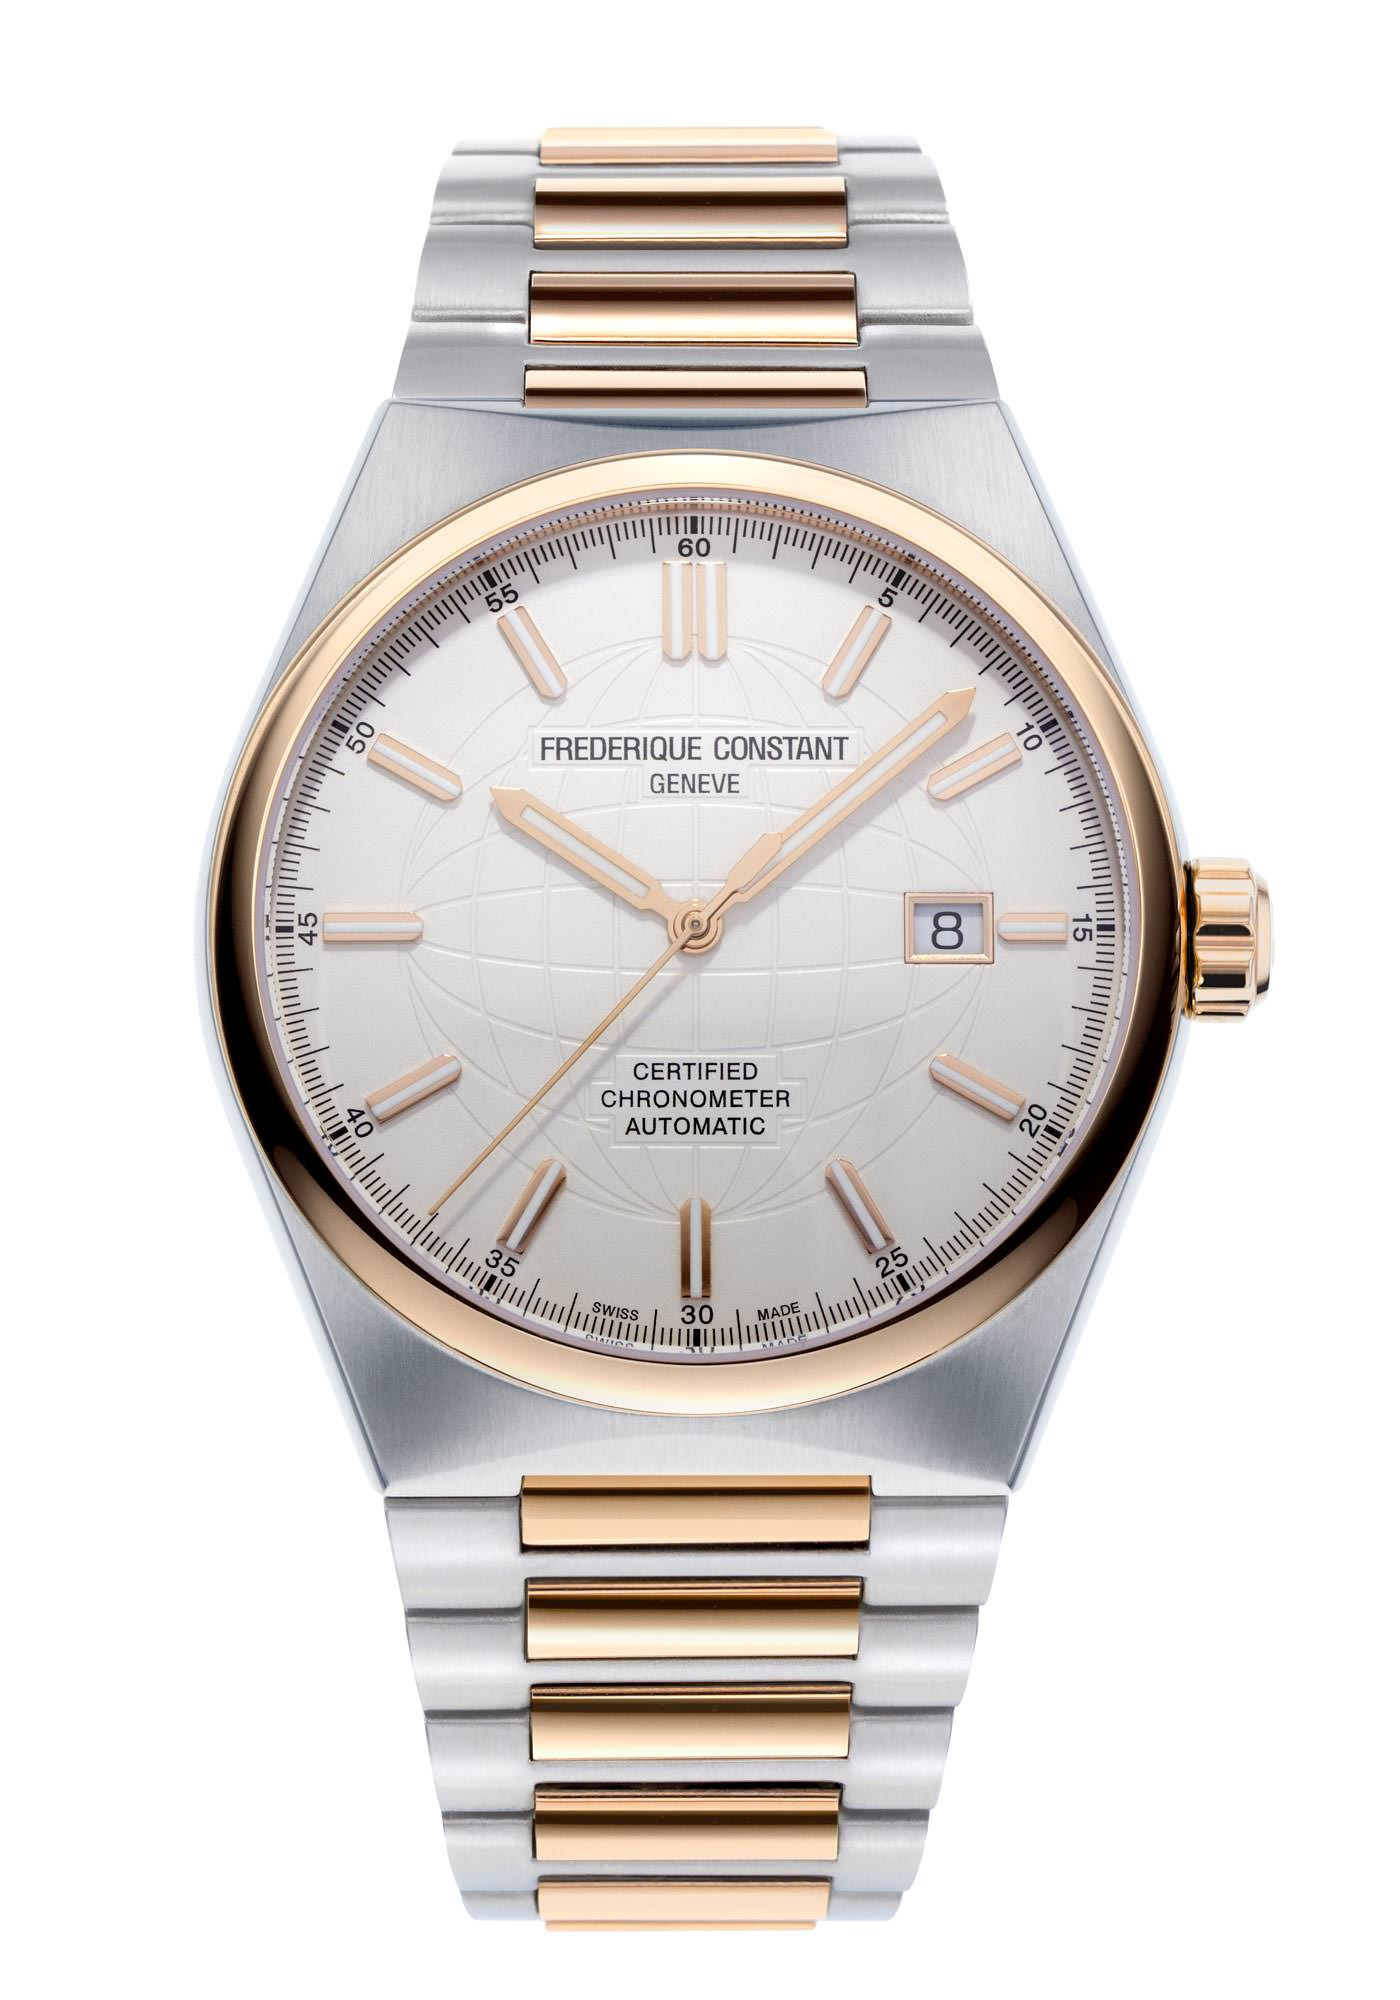 Frederique Constant Highlife Automatic COSC